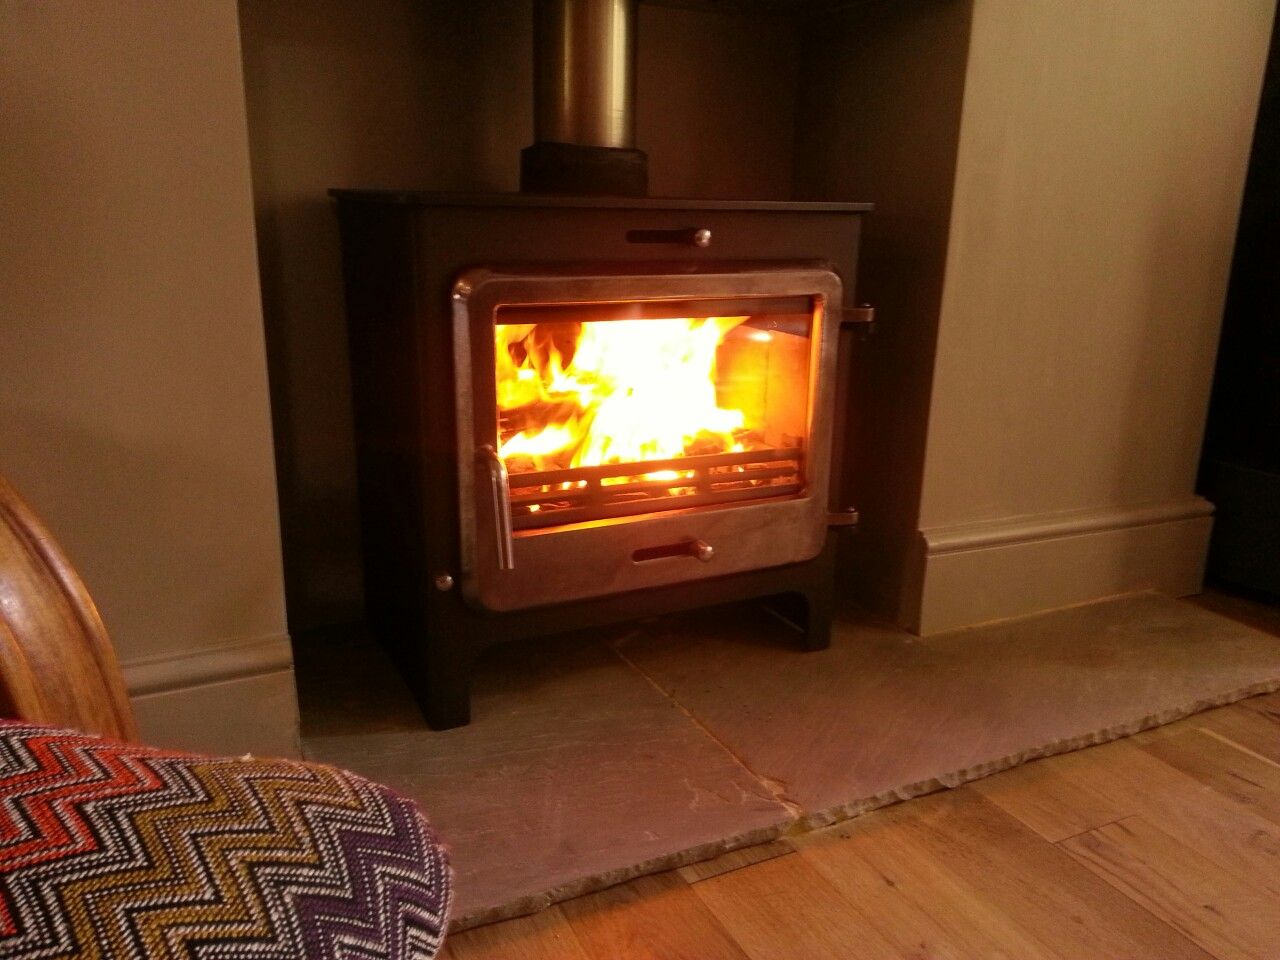 25 best inset stove images on pinterest inset stoves fireplaces